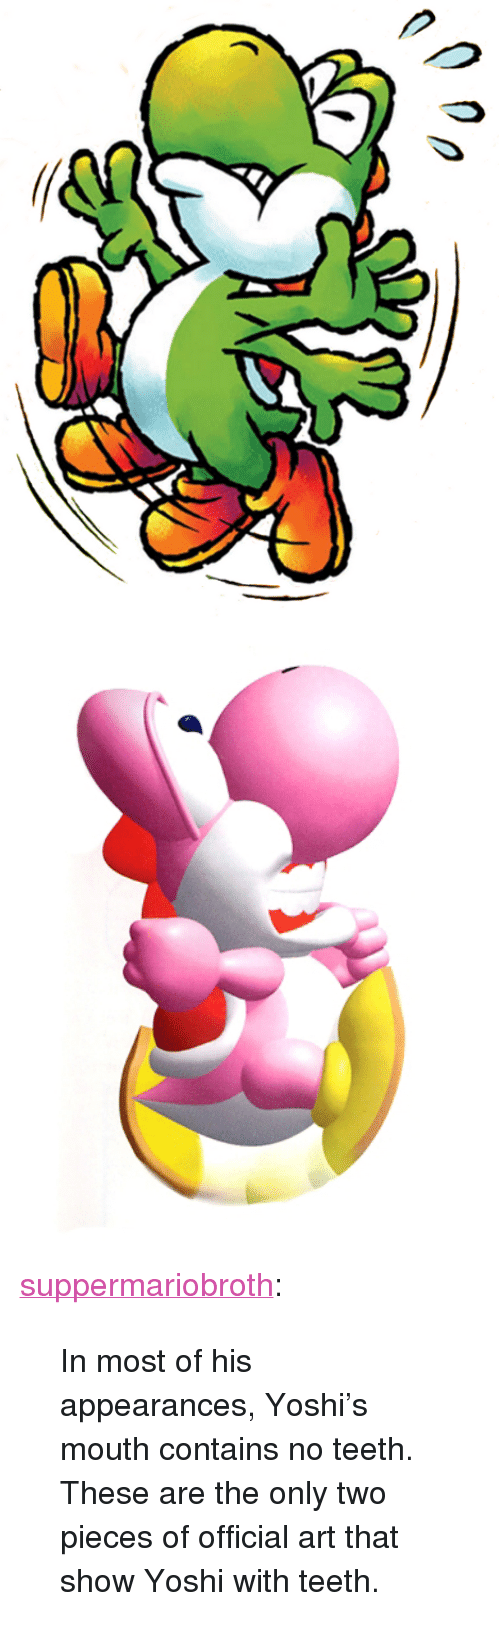 """Tumblr, Yoshi, and Blog: <p><a href=""""http://www.suppermariobroth.com/post/156040393565/in-most-of-his-appearances-yoshis-mouth-contains"""" class=""""tumblr_blog"""">suppermariobroth</a>:</p><blockquote><p>In most of his appearances, Yoshi's mouth contains no teeth. These are the only two pieces of official art that show Yoshi with teeth.</p></blockquote>"""